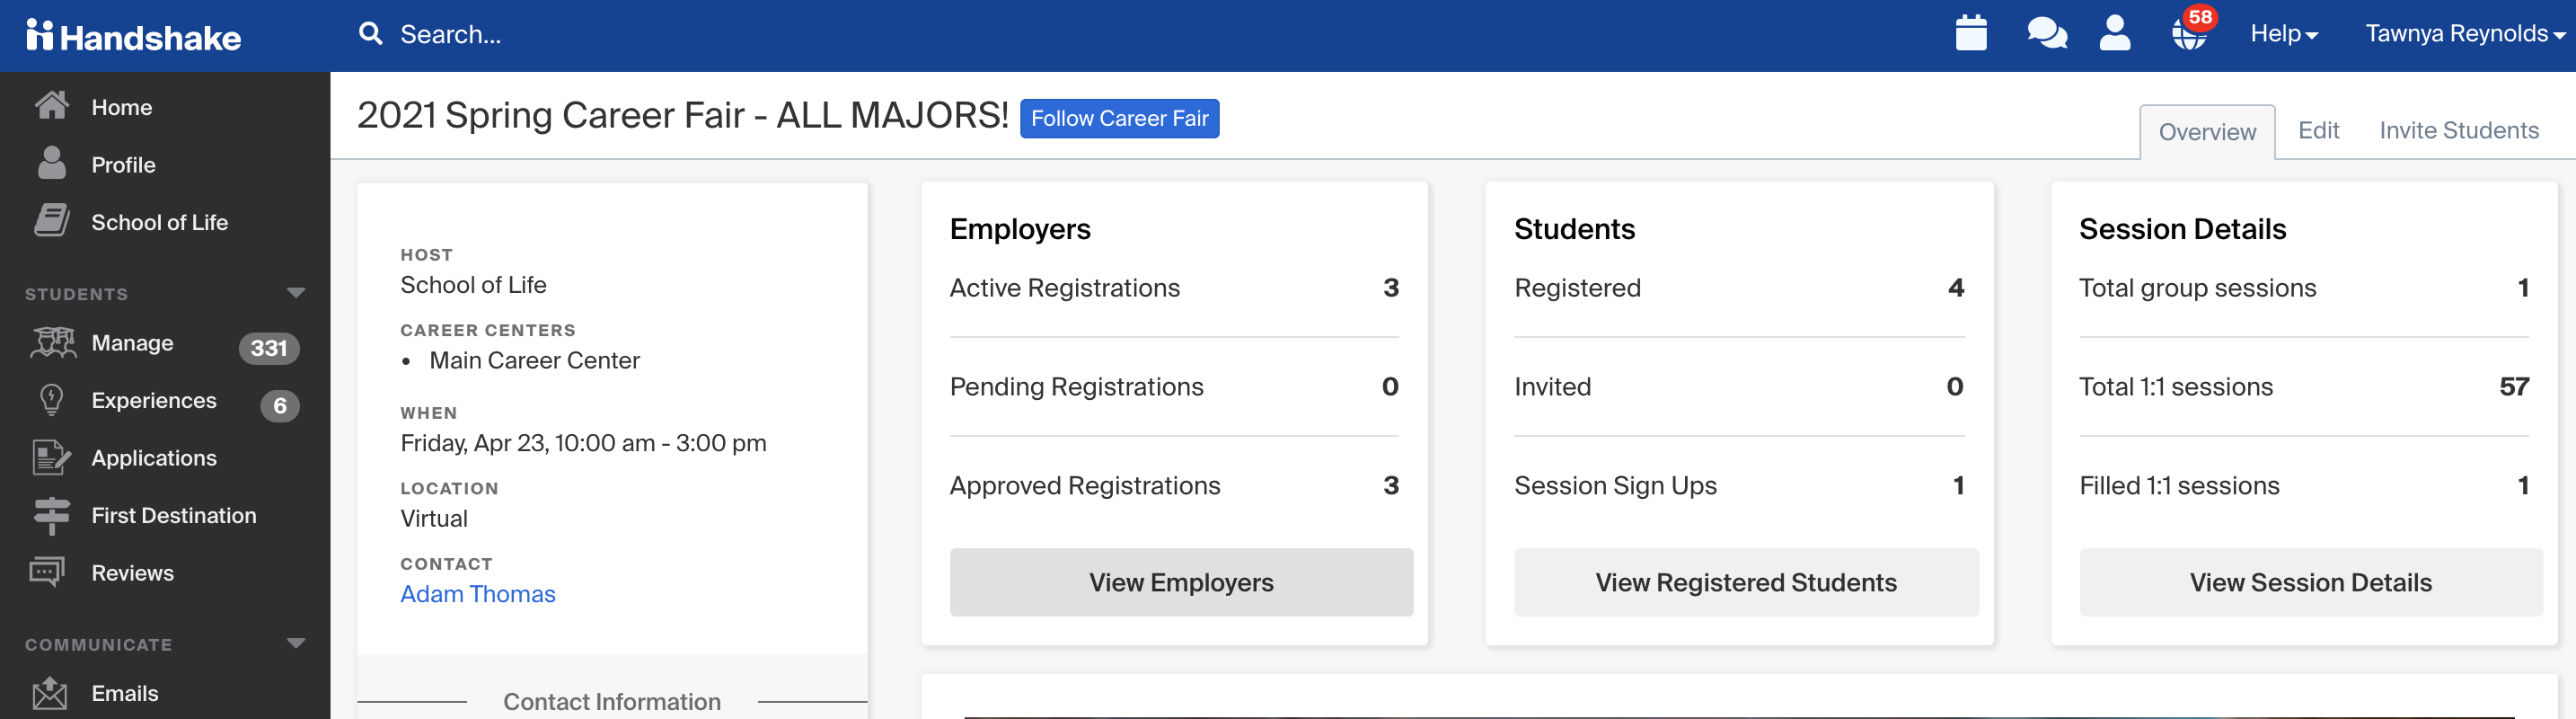 view_employers.png